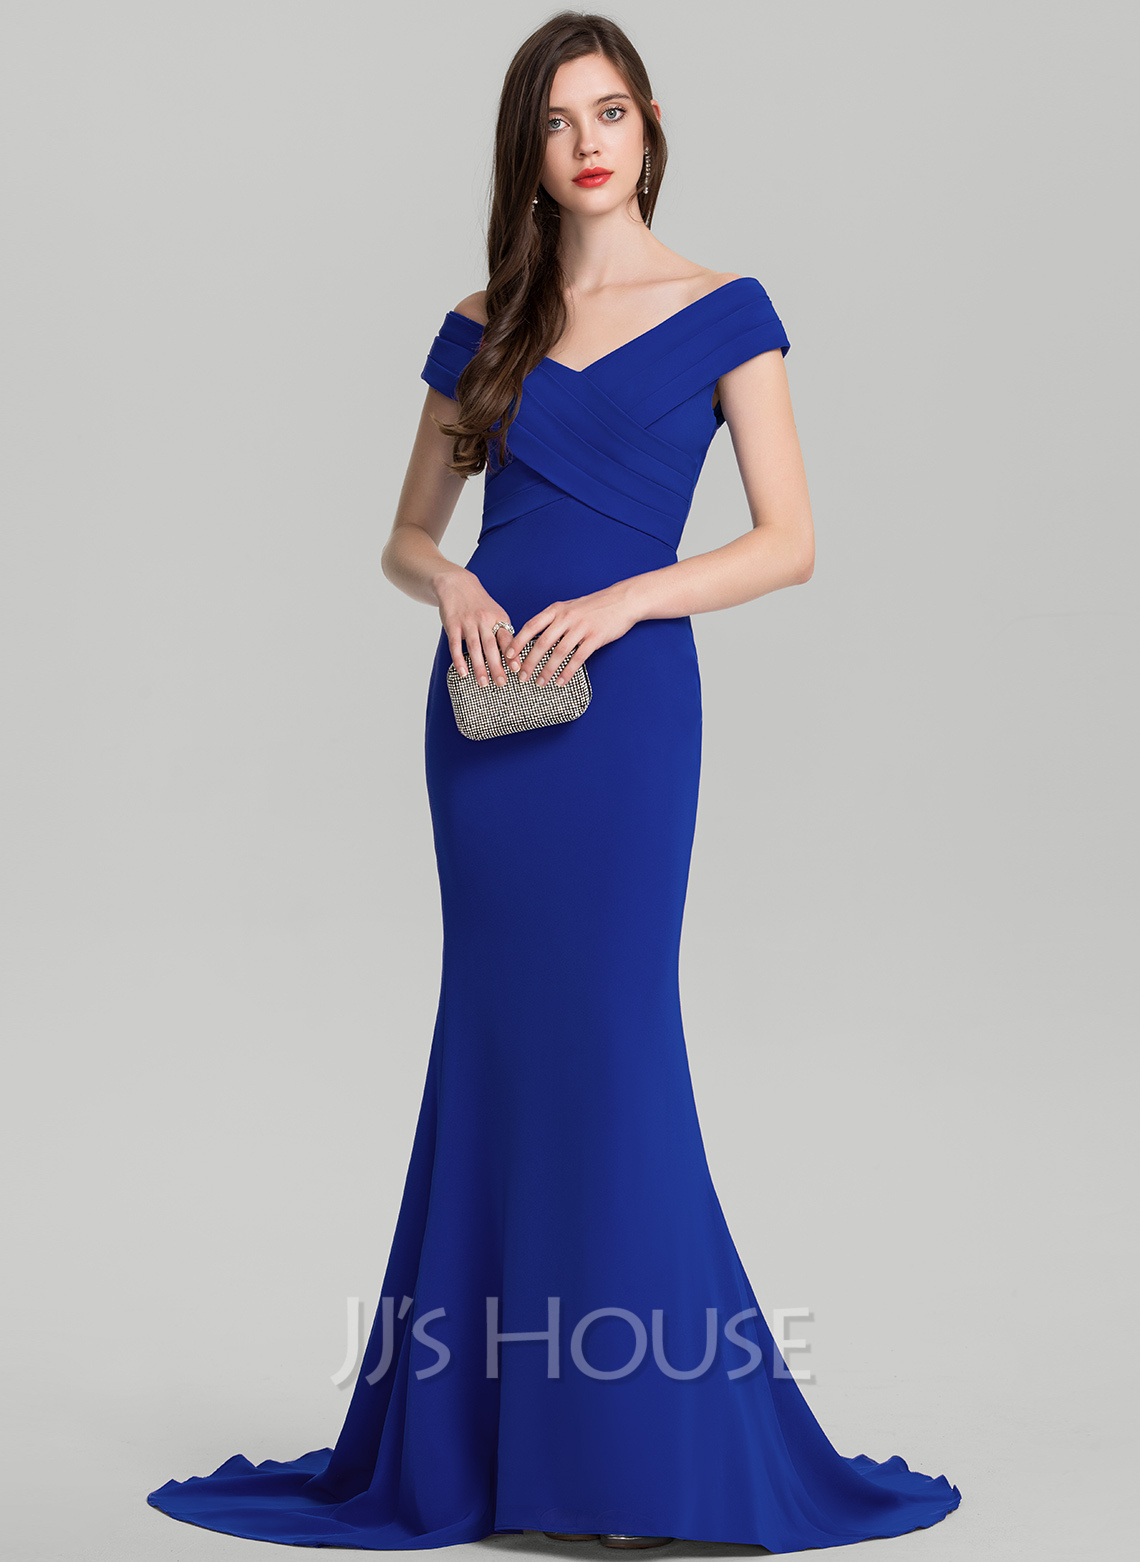 f7cbb3c11 Trumpet Mermaid Off-the-Shoulder Sweep Train Stretch Crepe Evening Dress  With Ruffle. Loading zoom